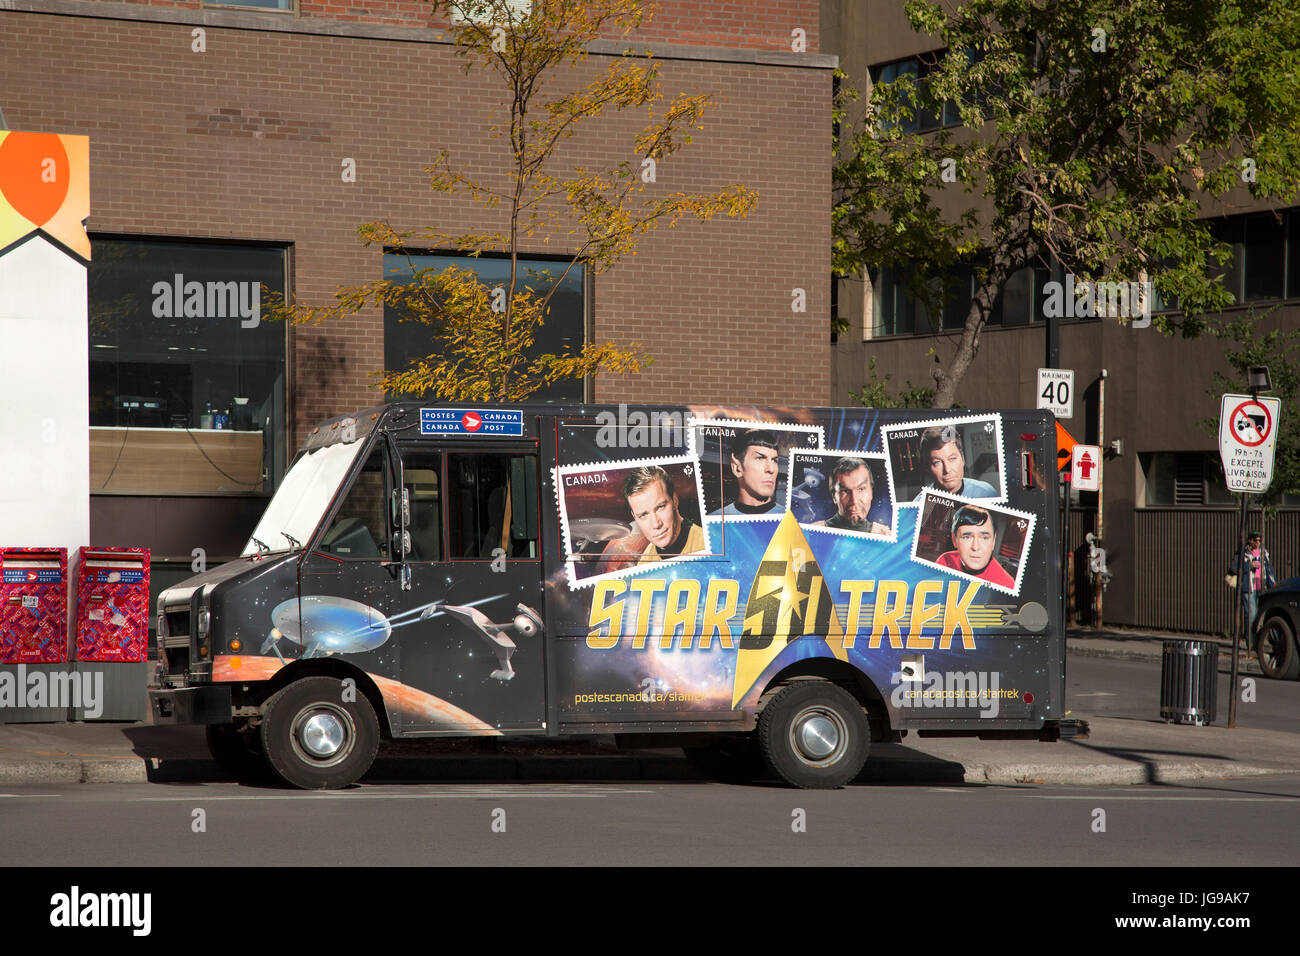 Star Trek characters depicted on a Canada Post van parked in Montreal, Canada. The truck advertises a special stamp - Stock Image